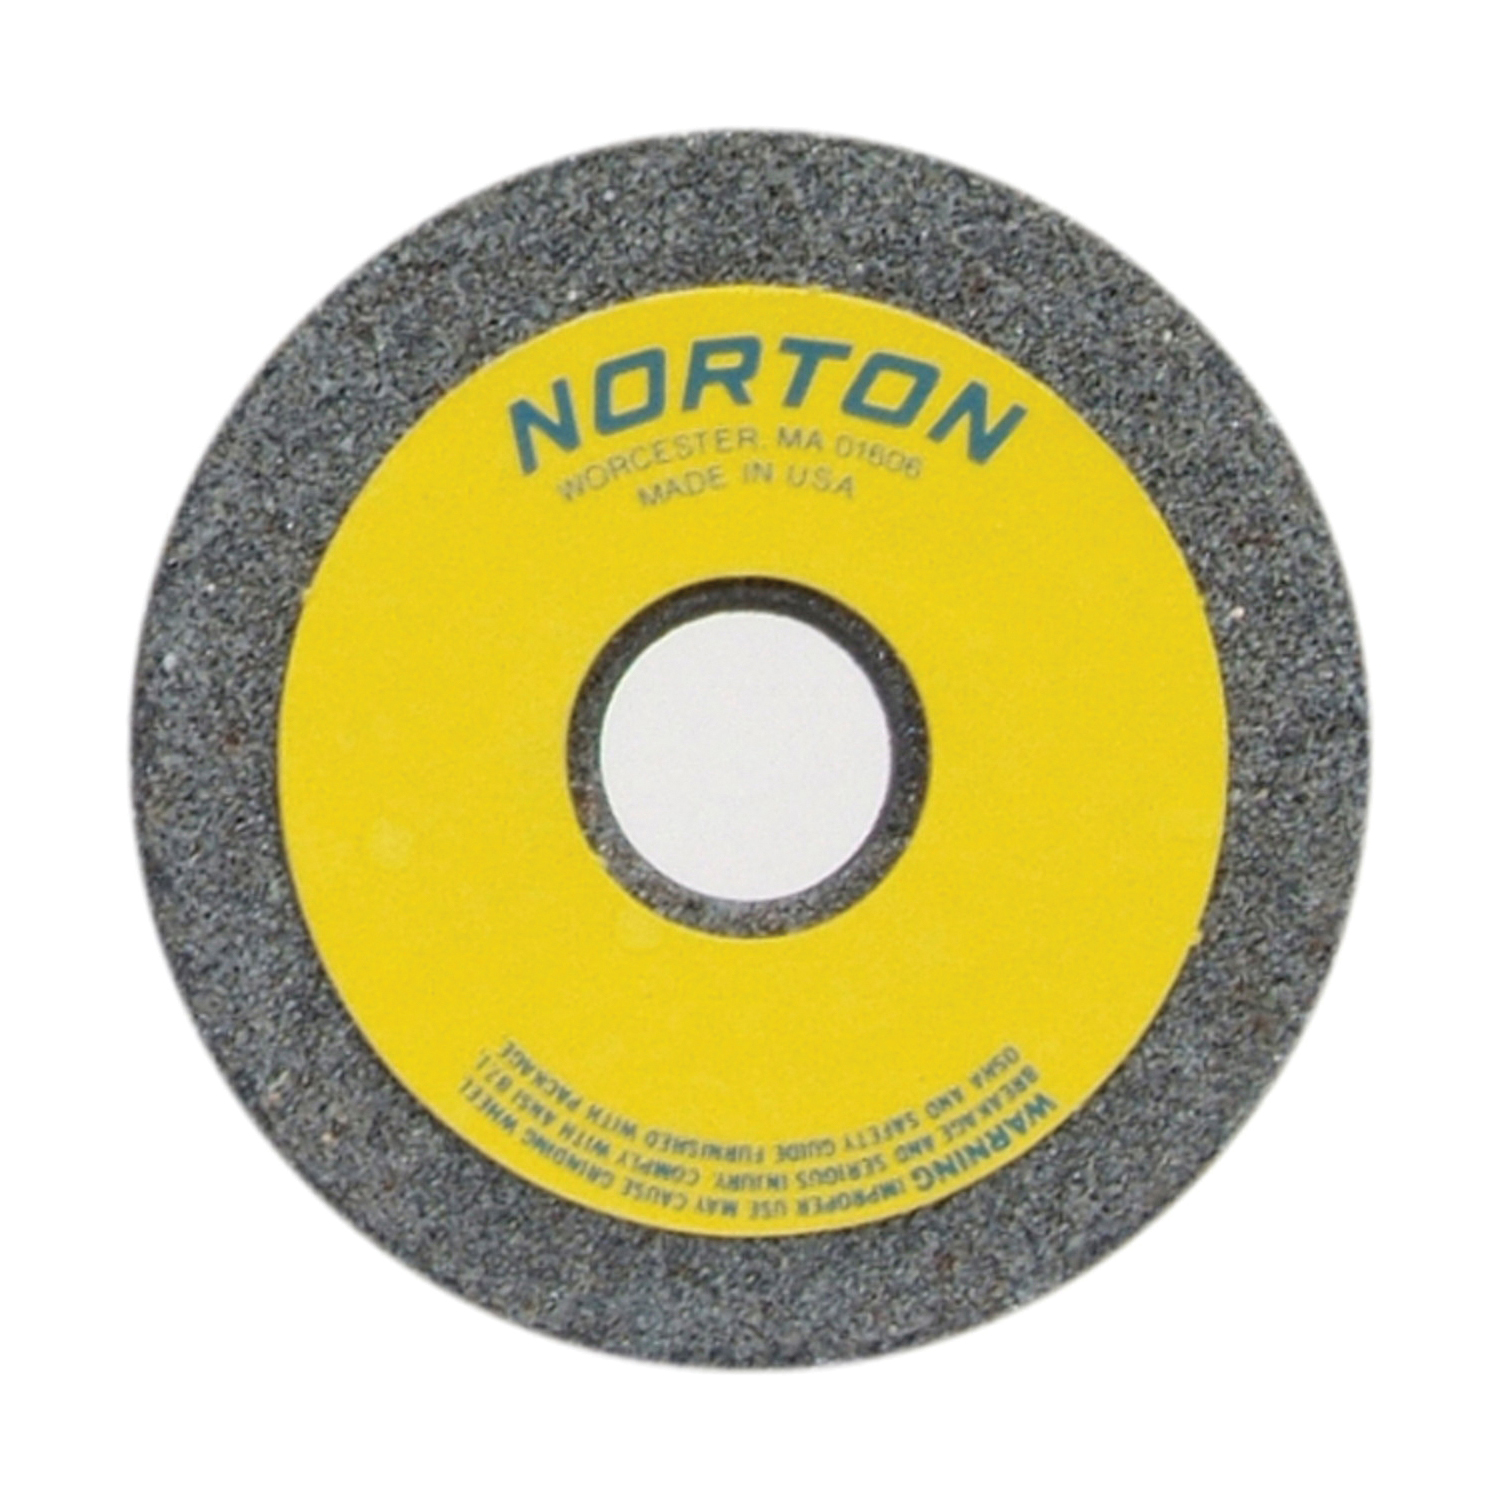 Norton® 66243529338 37C Toolroom Wheel, 3-1/2 in Dia x 1-1/2 in THK, 7/8 in Center Hole, 30 Grit, Silicon Carbide Abrasive